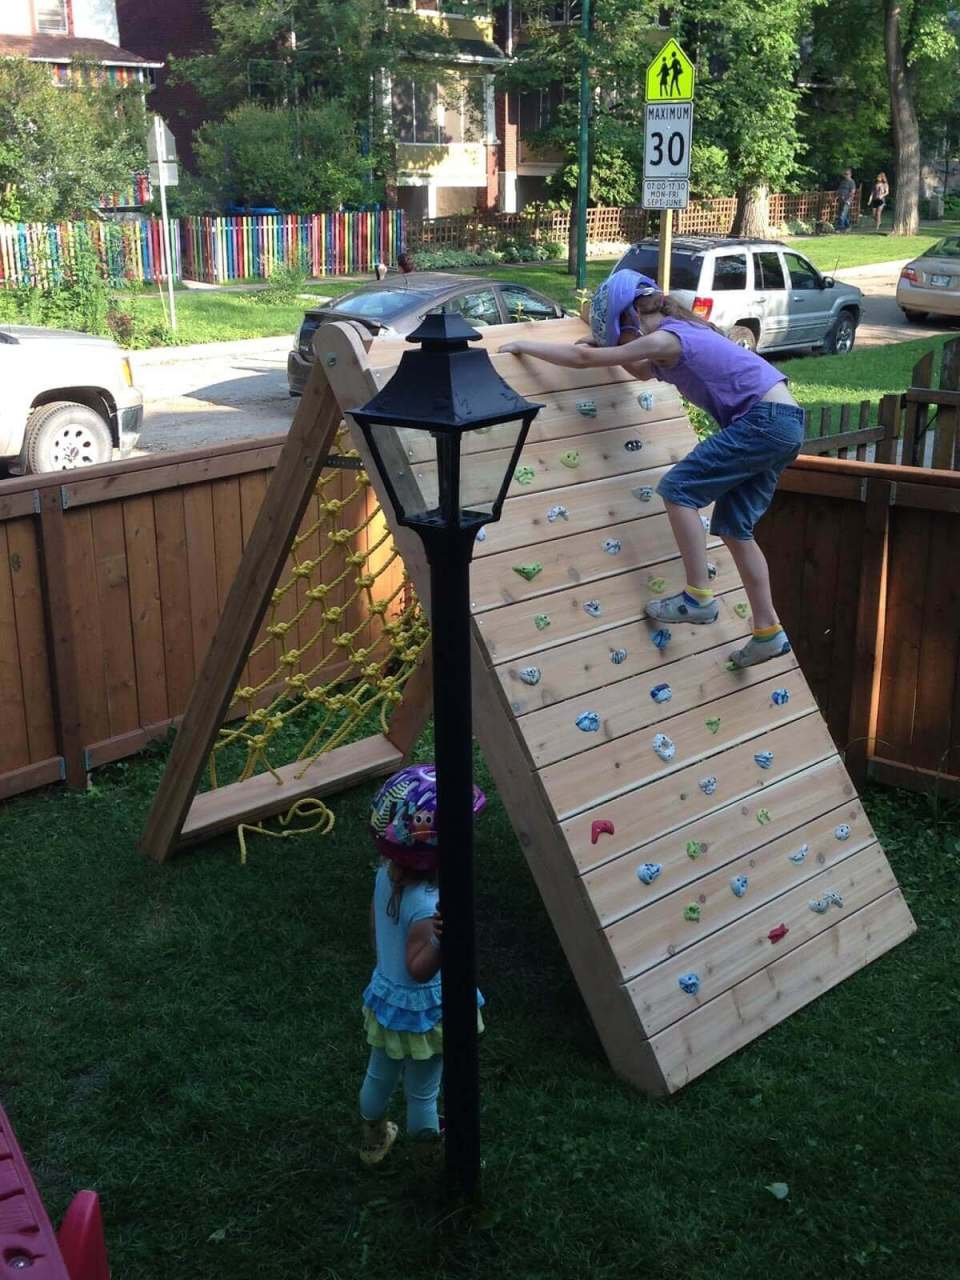 Rock Wall and Cargo Net Obstacle Course